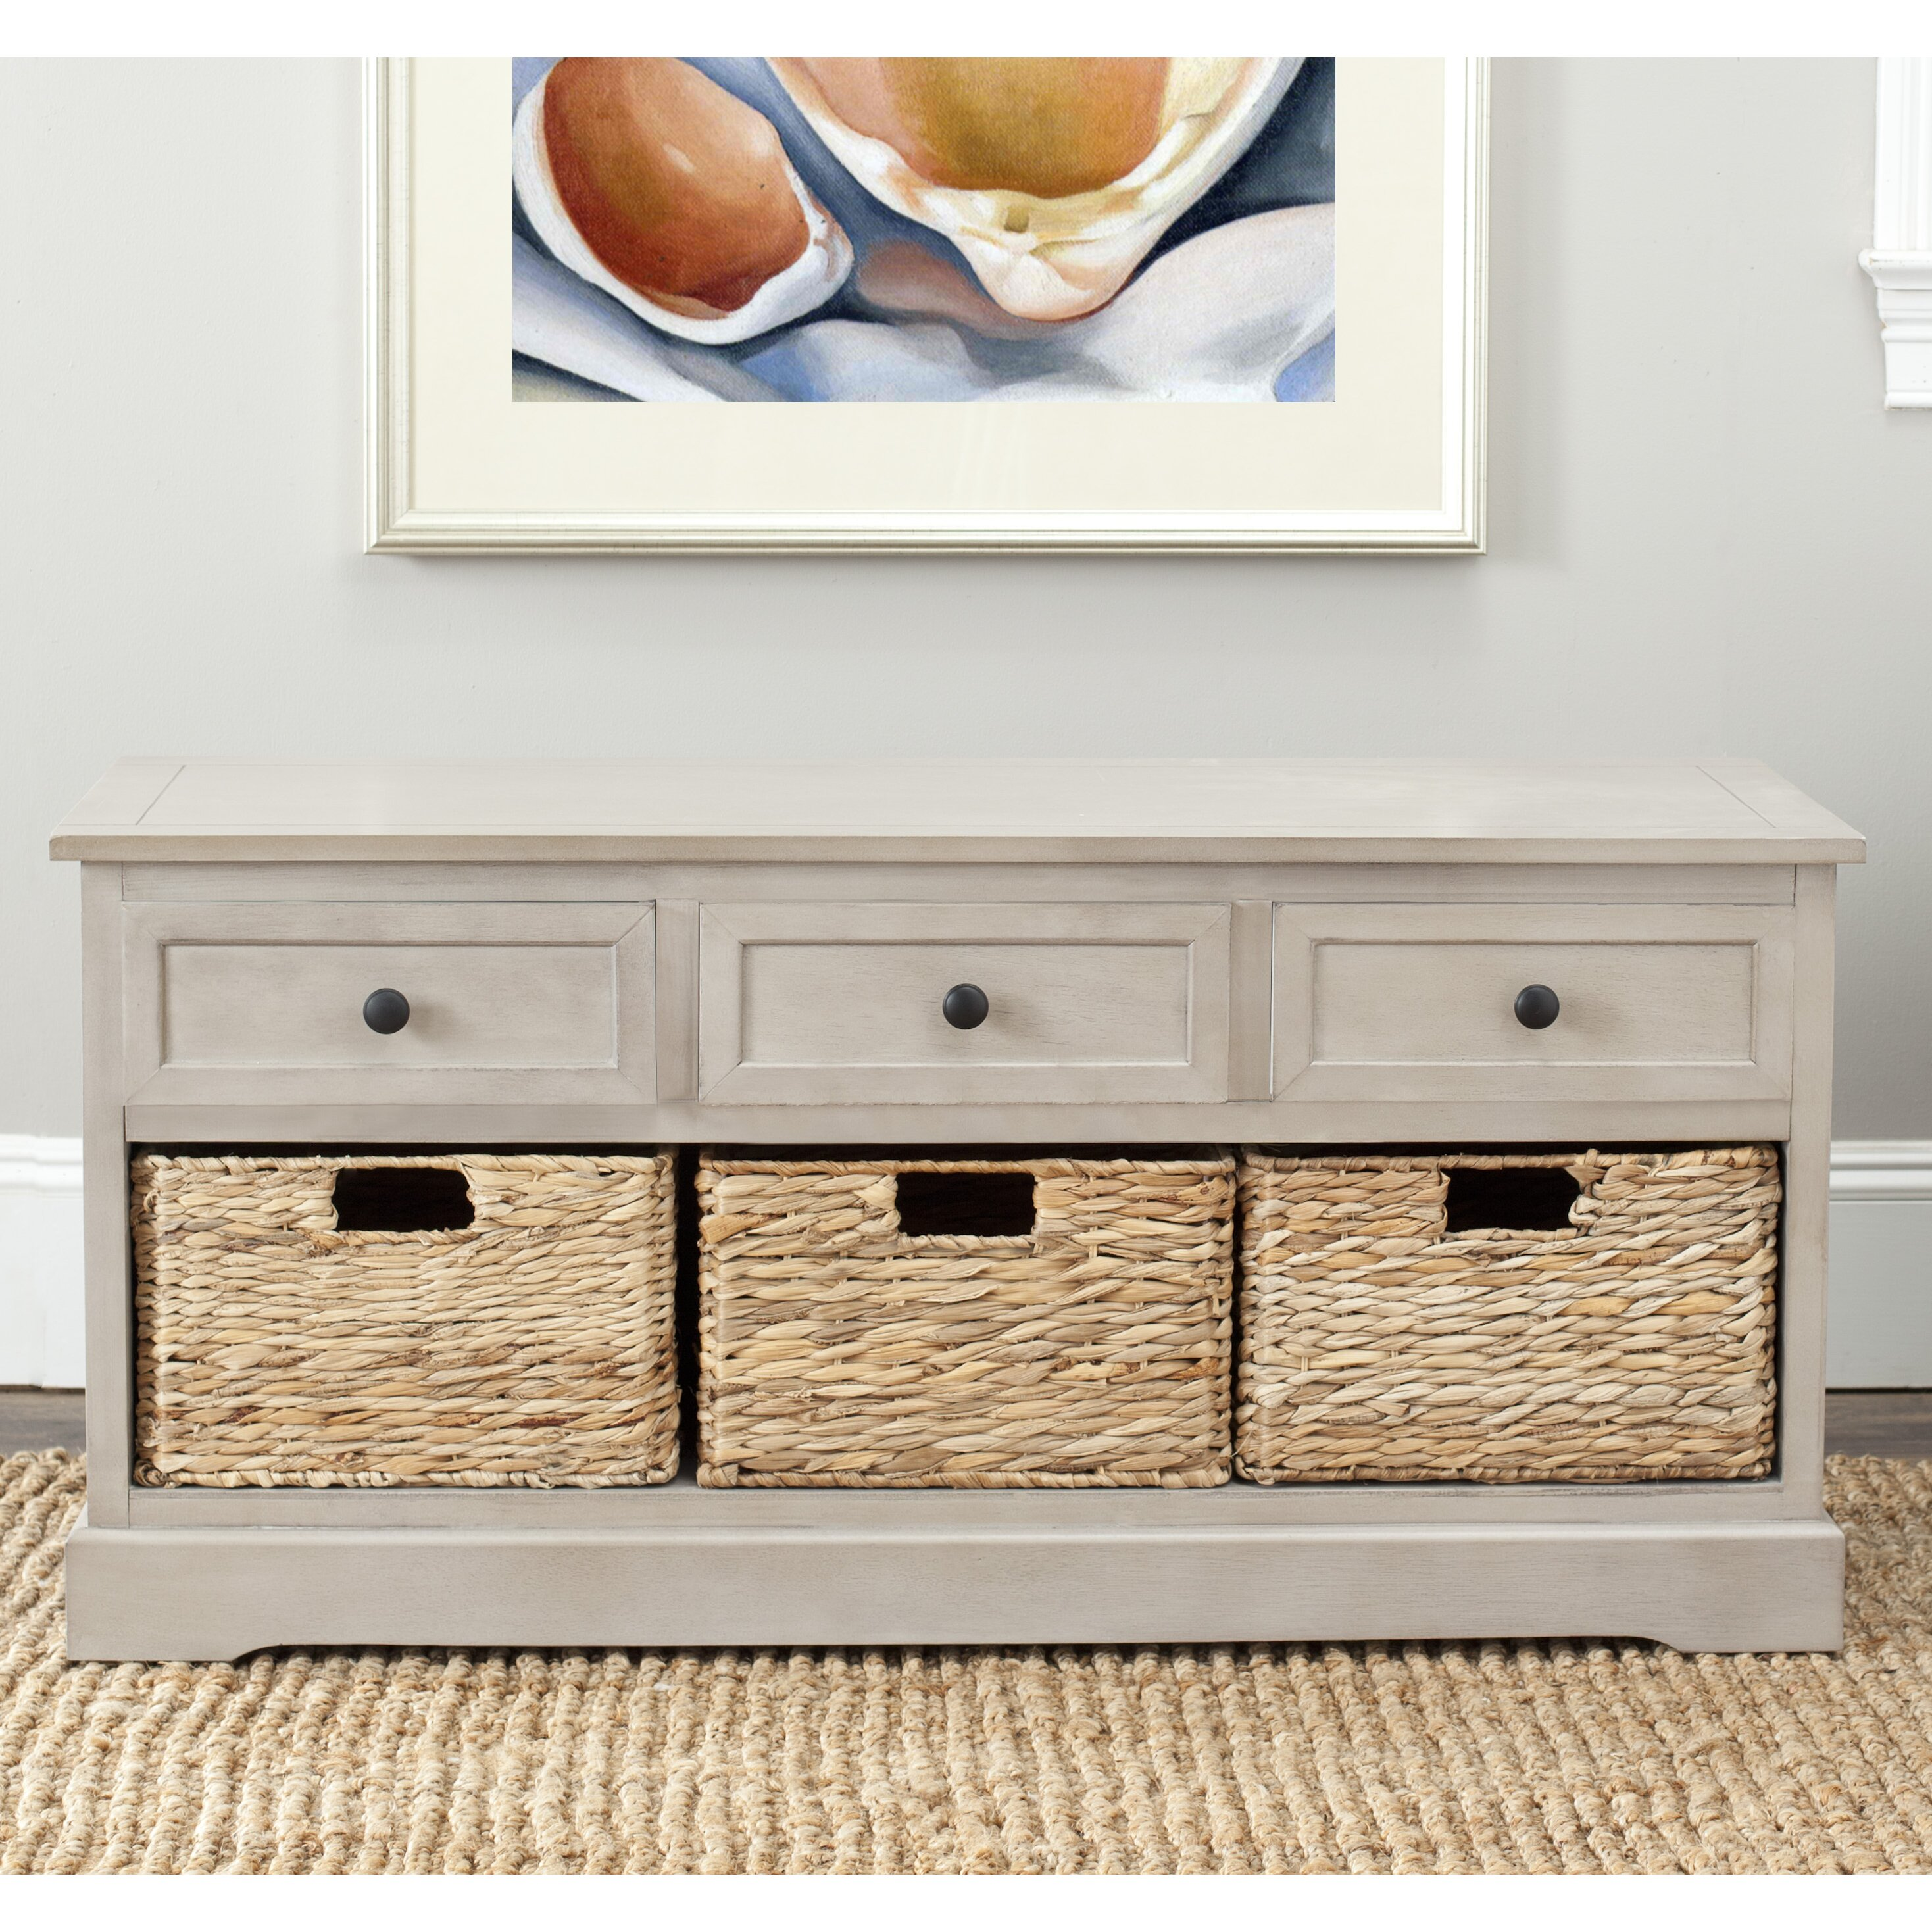 Foyer Bench With Drawers : Beachcrest home mckinley drawer storage entryway bench